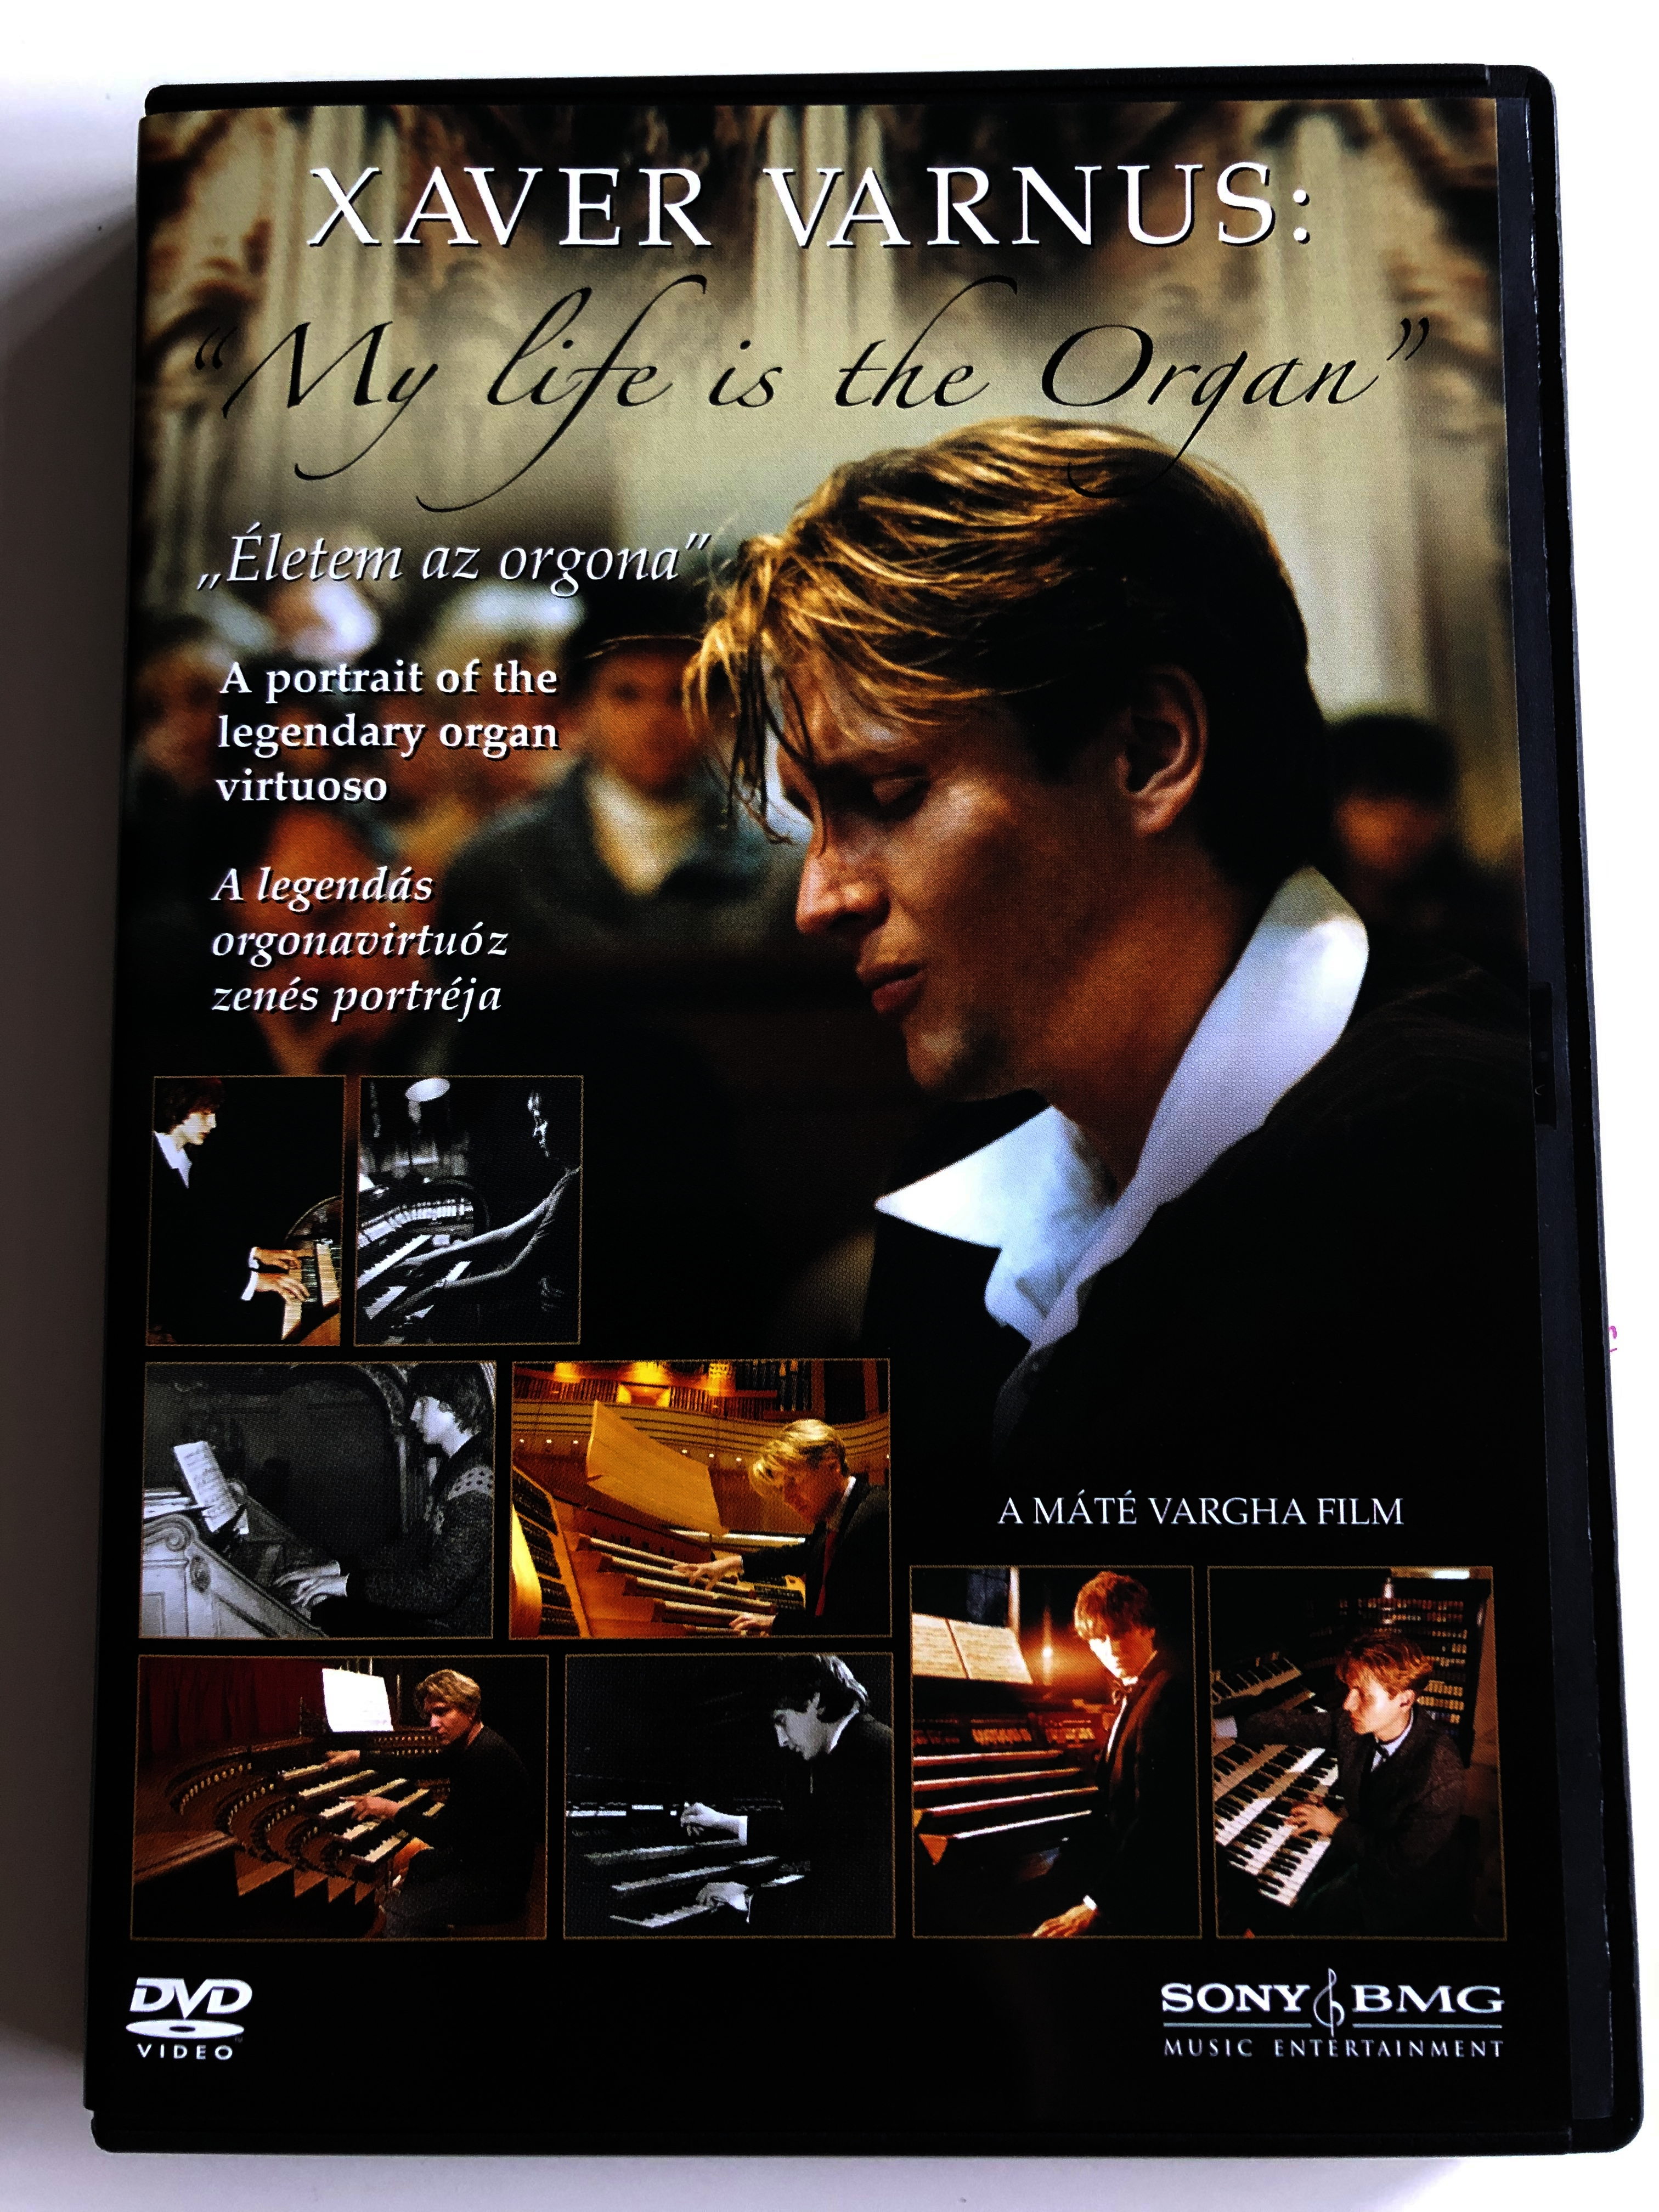 xaver-varnus-my-life-is-the-organ-dvd-2007-letem-az-orgona-a-portrait-of-the-legendary-organ-virtuoso-1.jpg